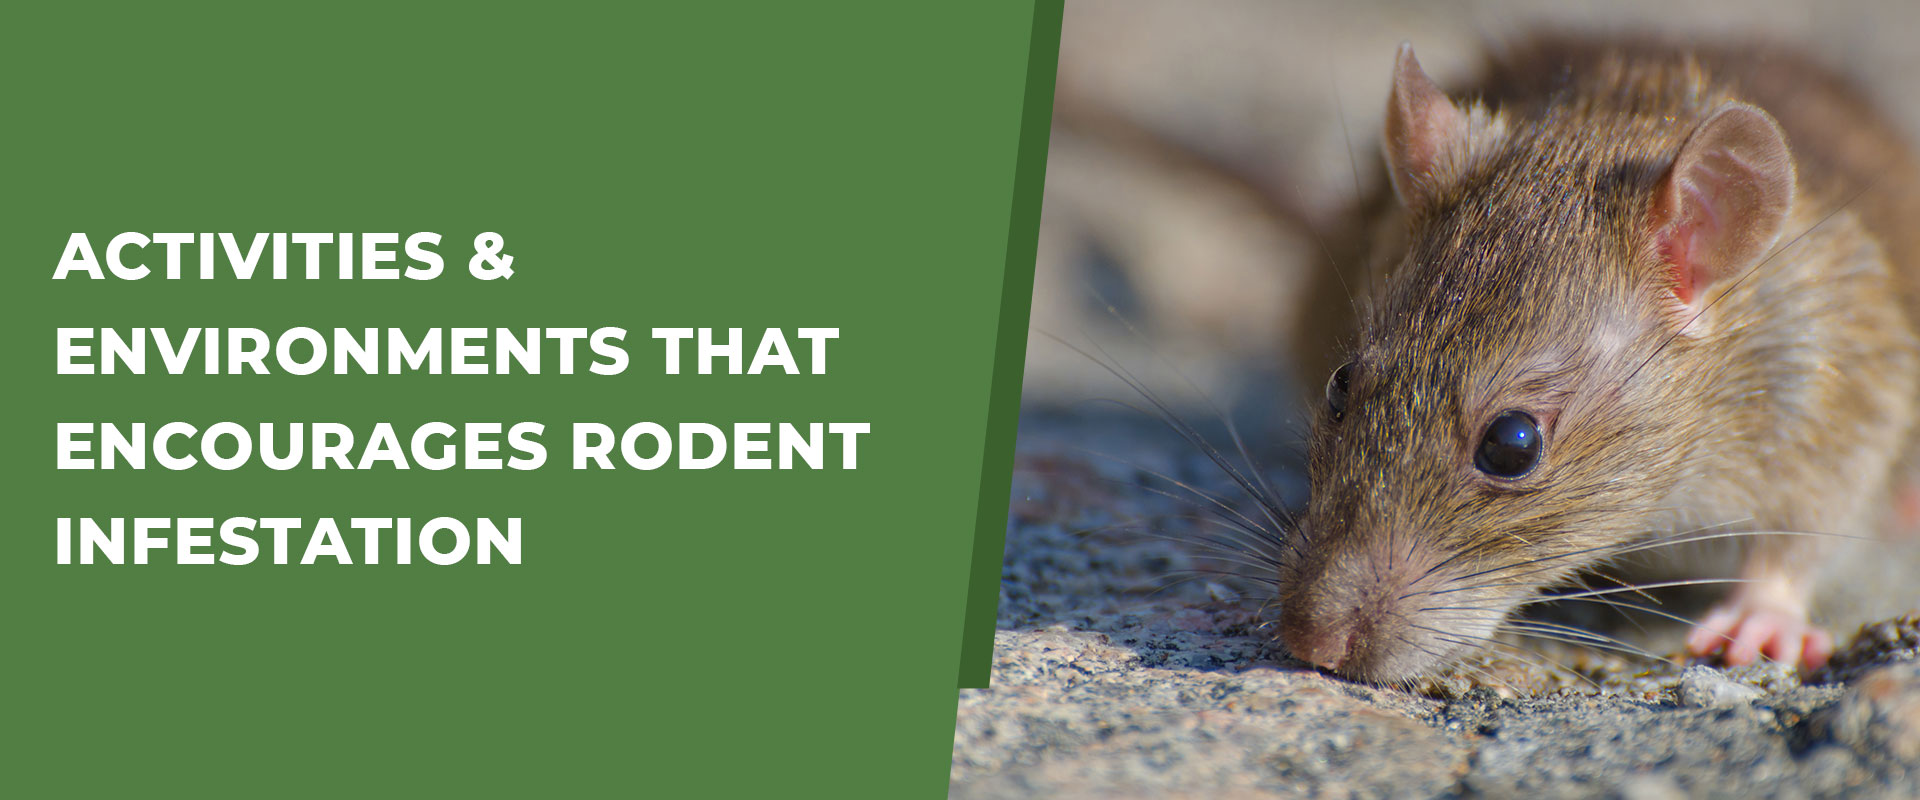 Activities And Environments That Encourages Rodent Infestation